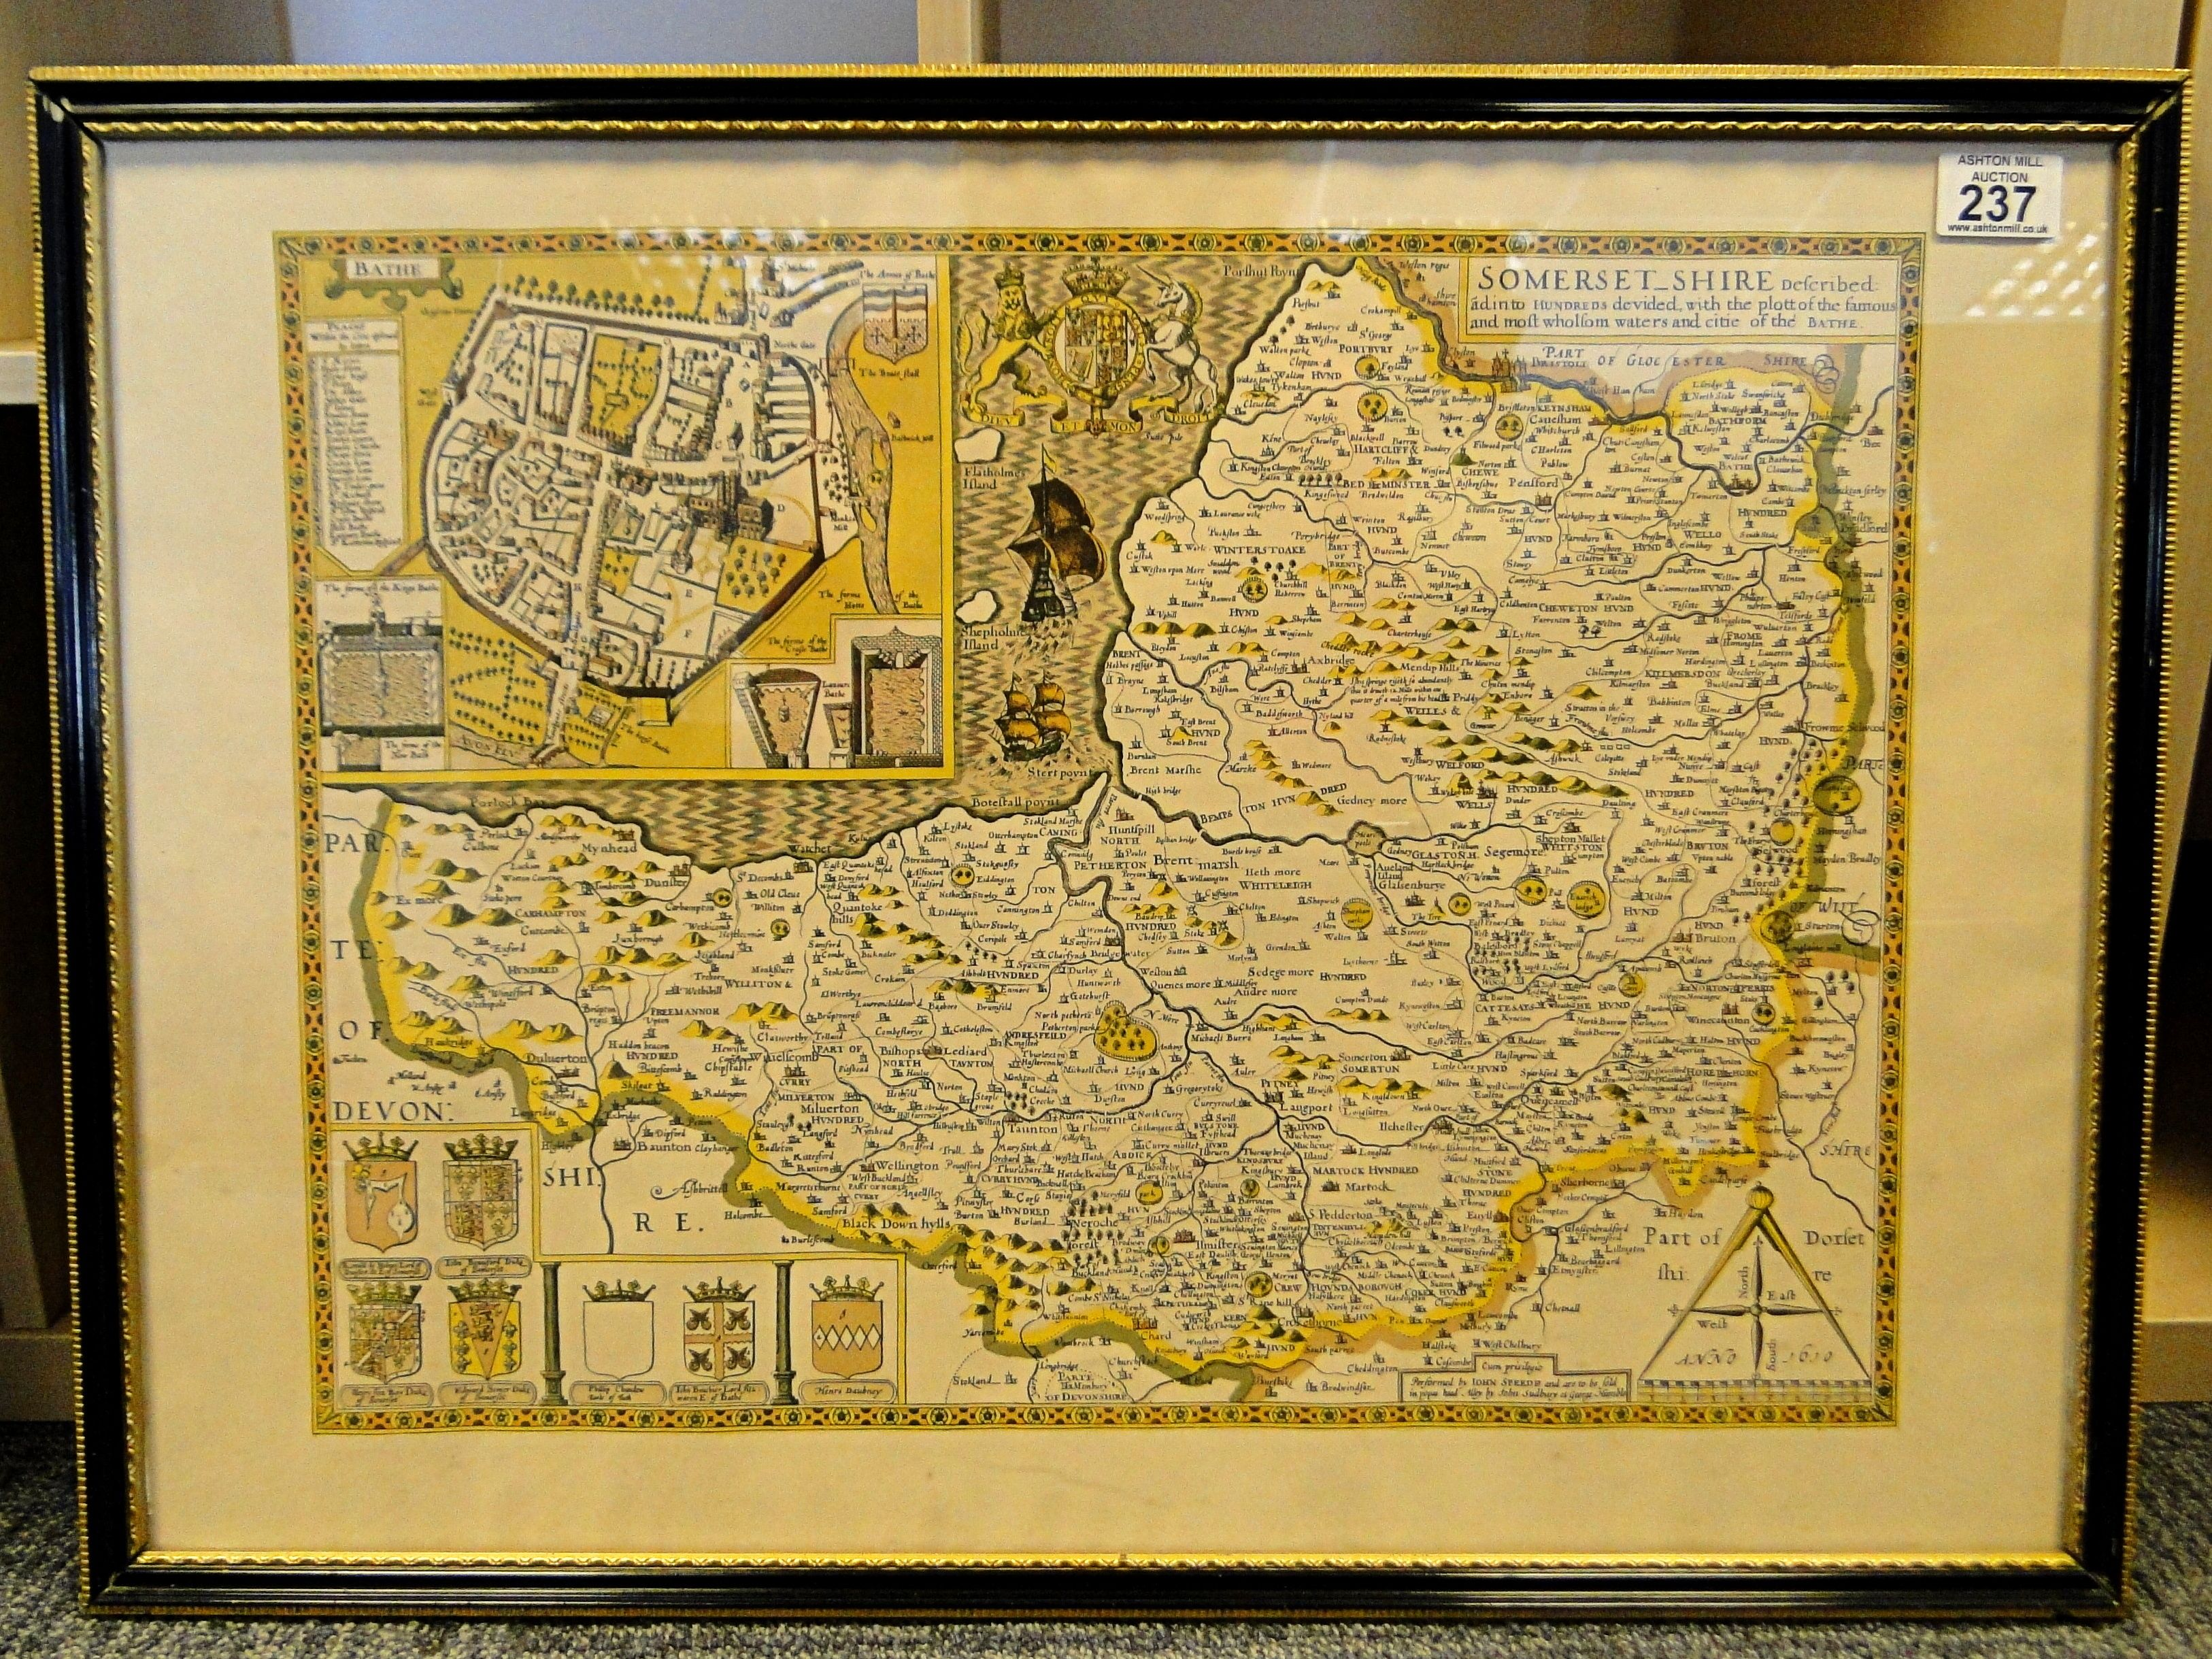 237 after john speede large framed coloured antique map of 237 after john speede large framed coloured antique map of somersetshire with inset plan publicscrutiny Image collections